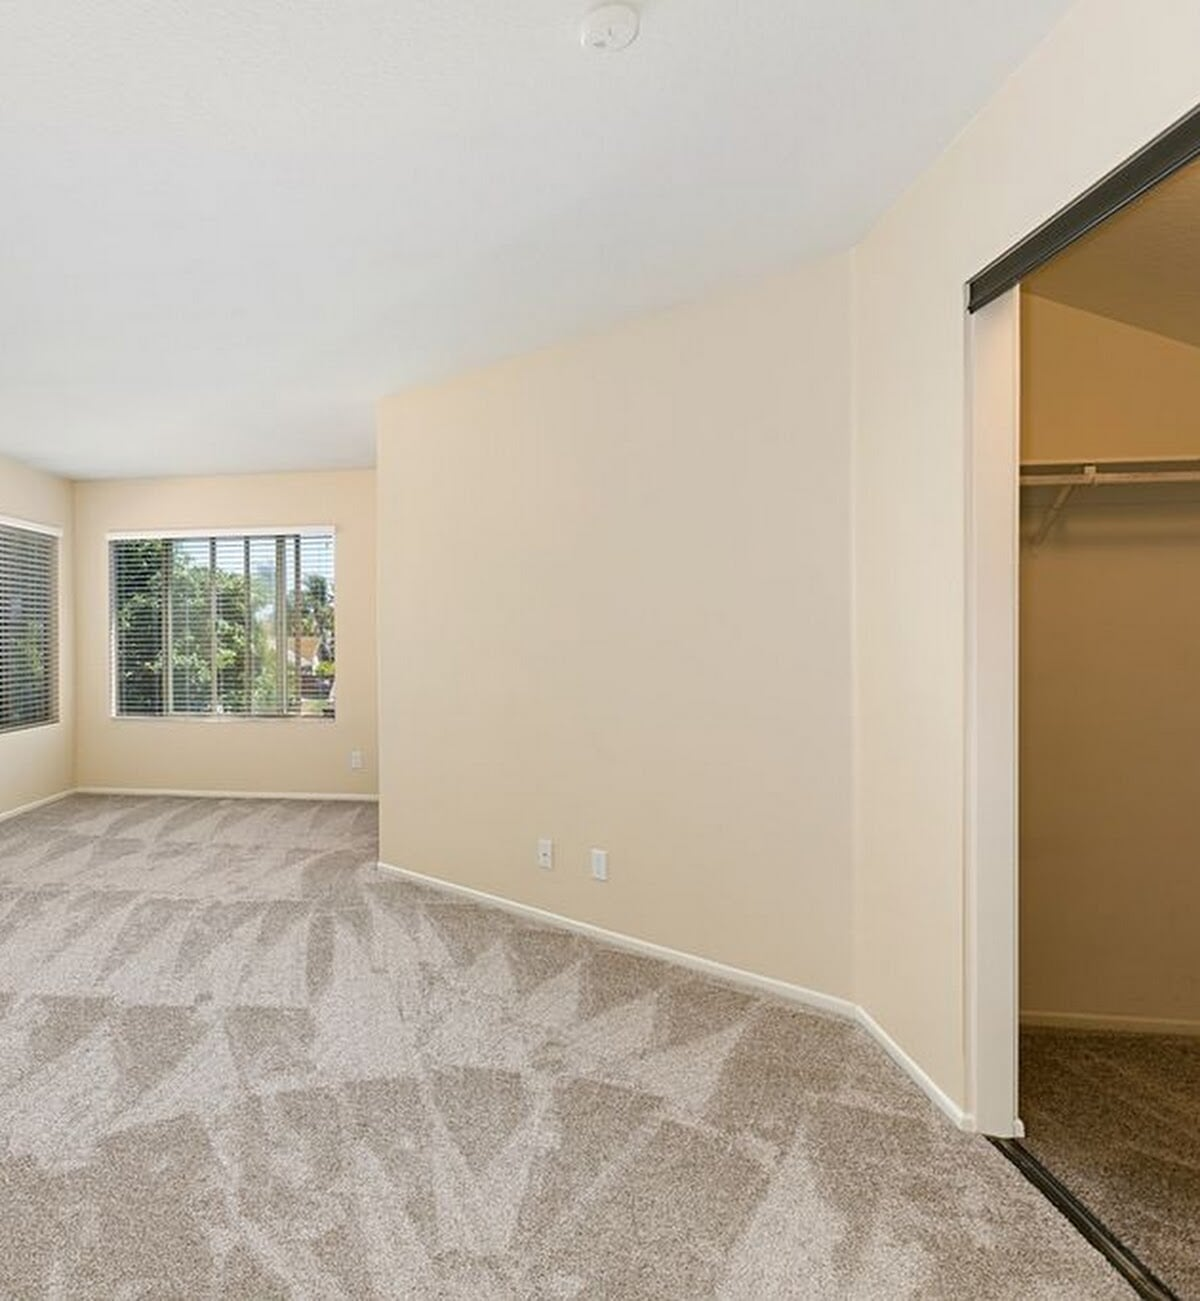 Sugarcookie carpet project in Carlsbad, CA from Savon Flooring